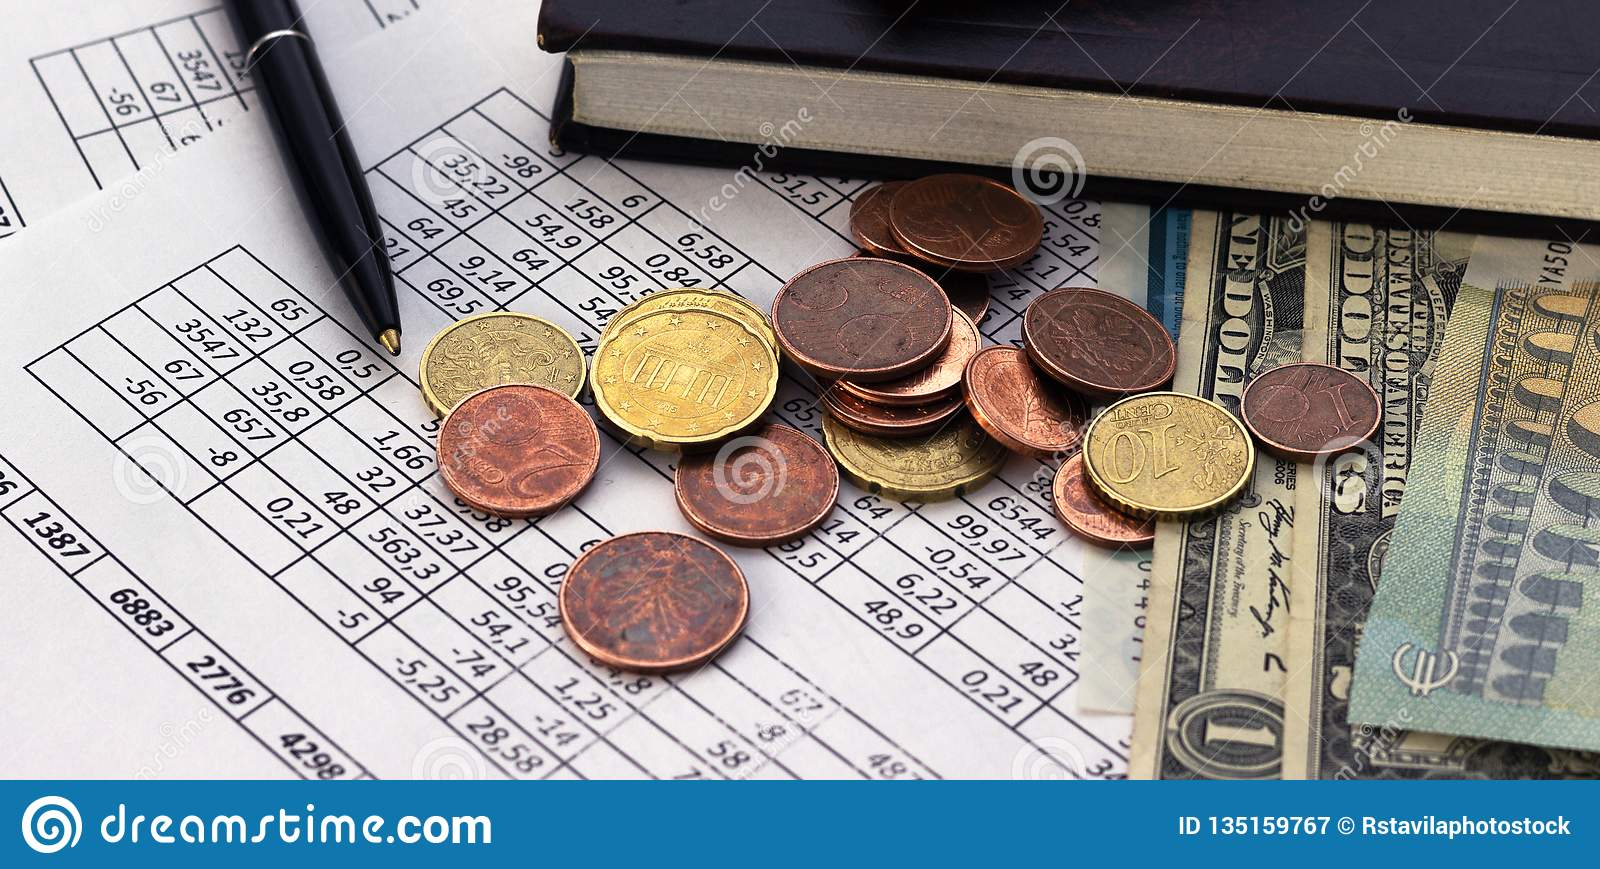 Business finance saving planning account concept. accounting, business calculations, cash counting.